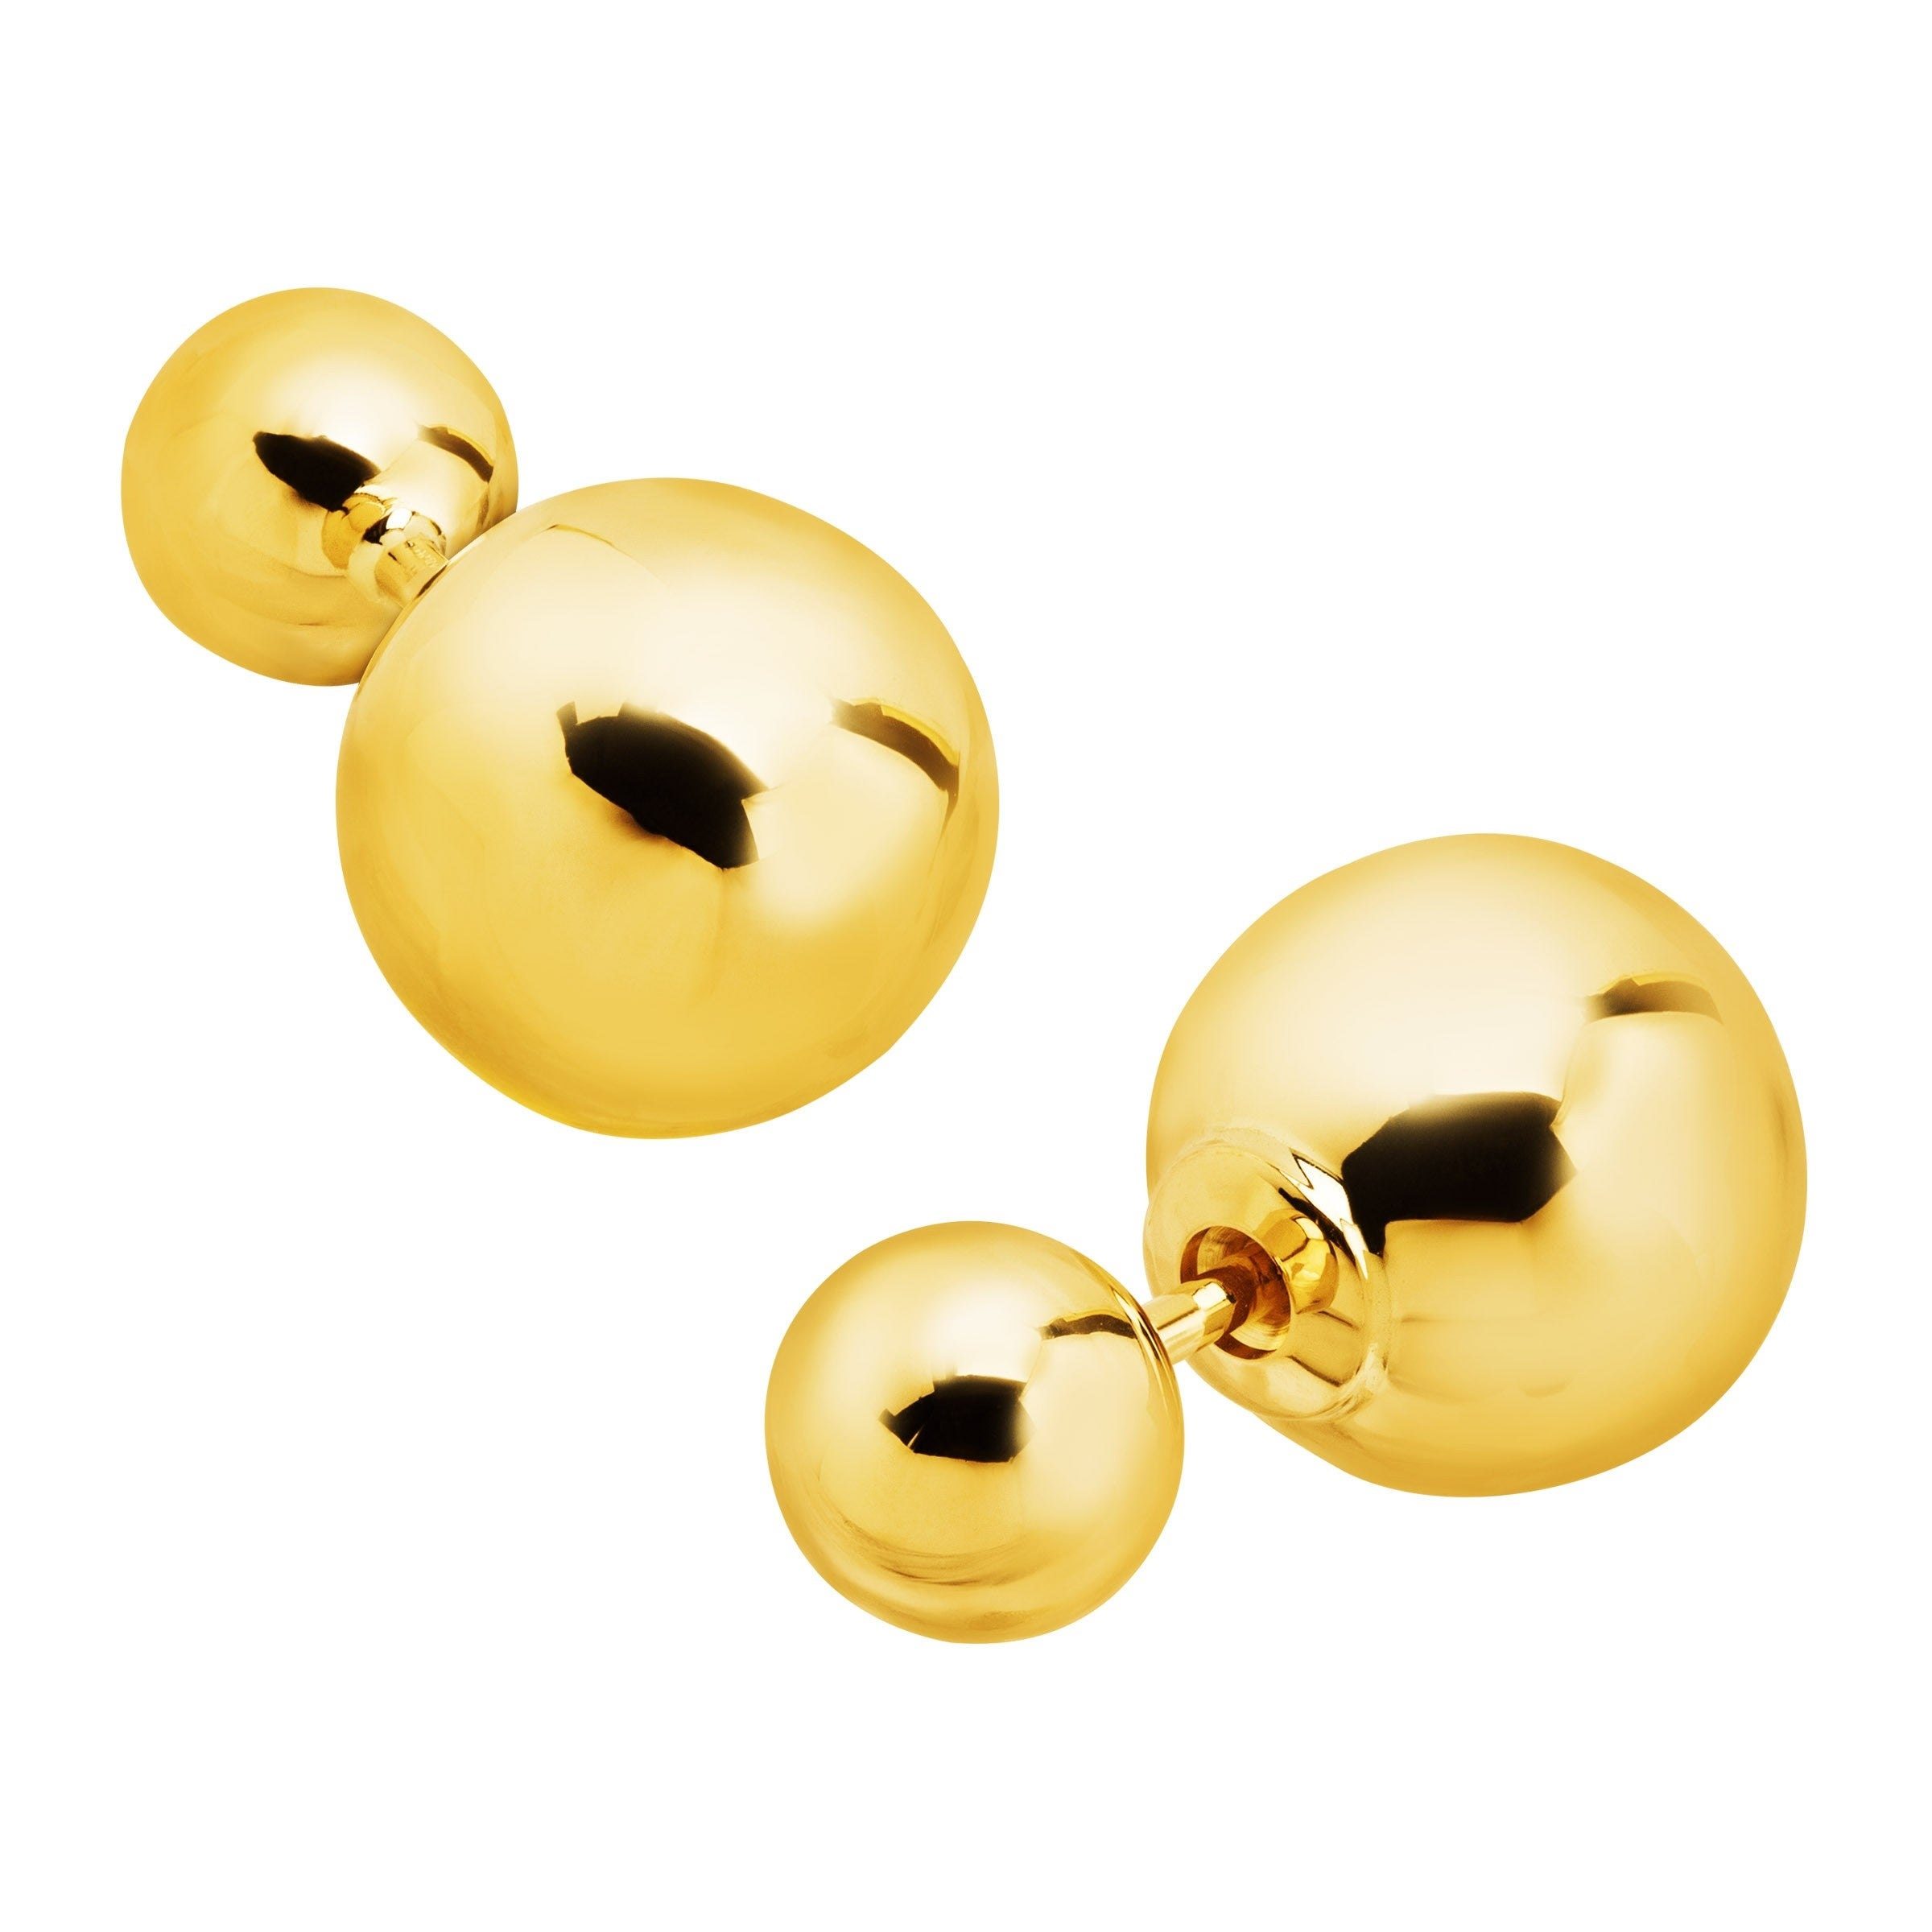 425f1eec8 Eternity Gold Polished Double Ball Front-Back Stud Earrings in 14K Gold -  Yellow